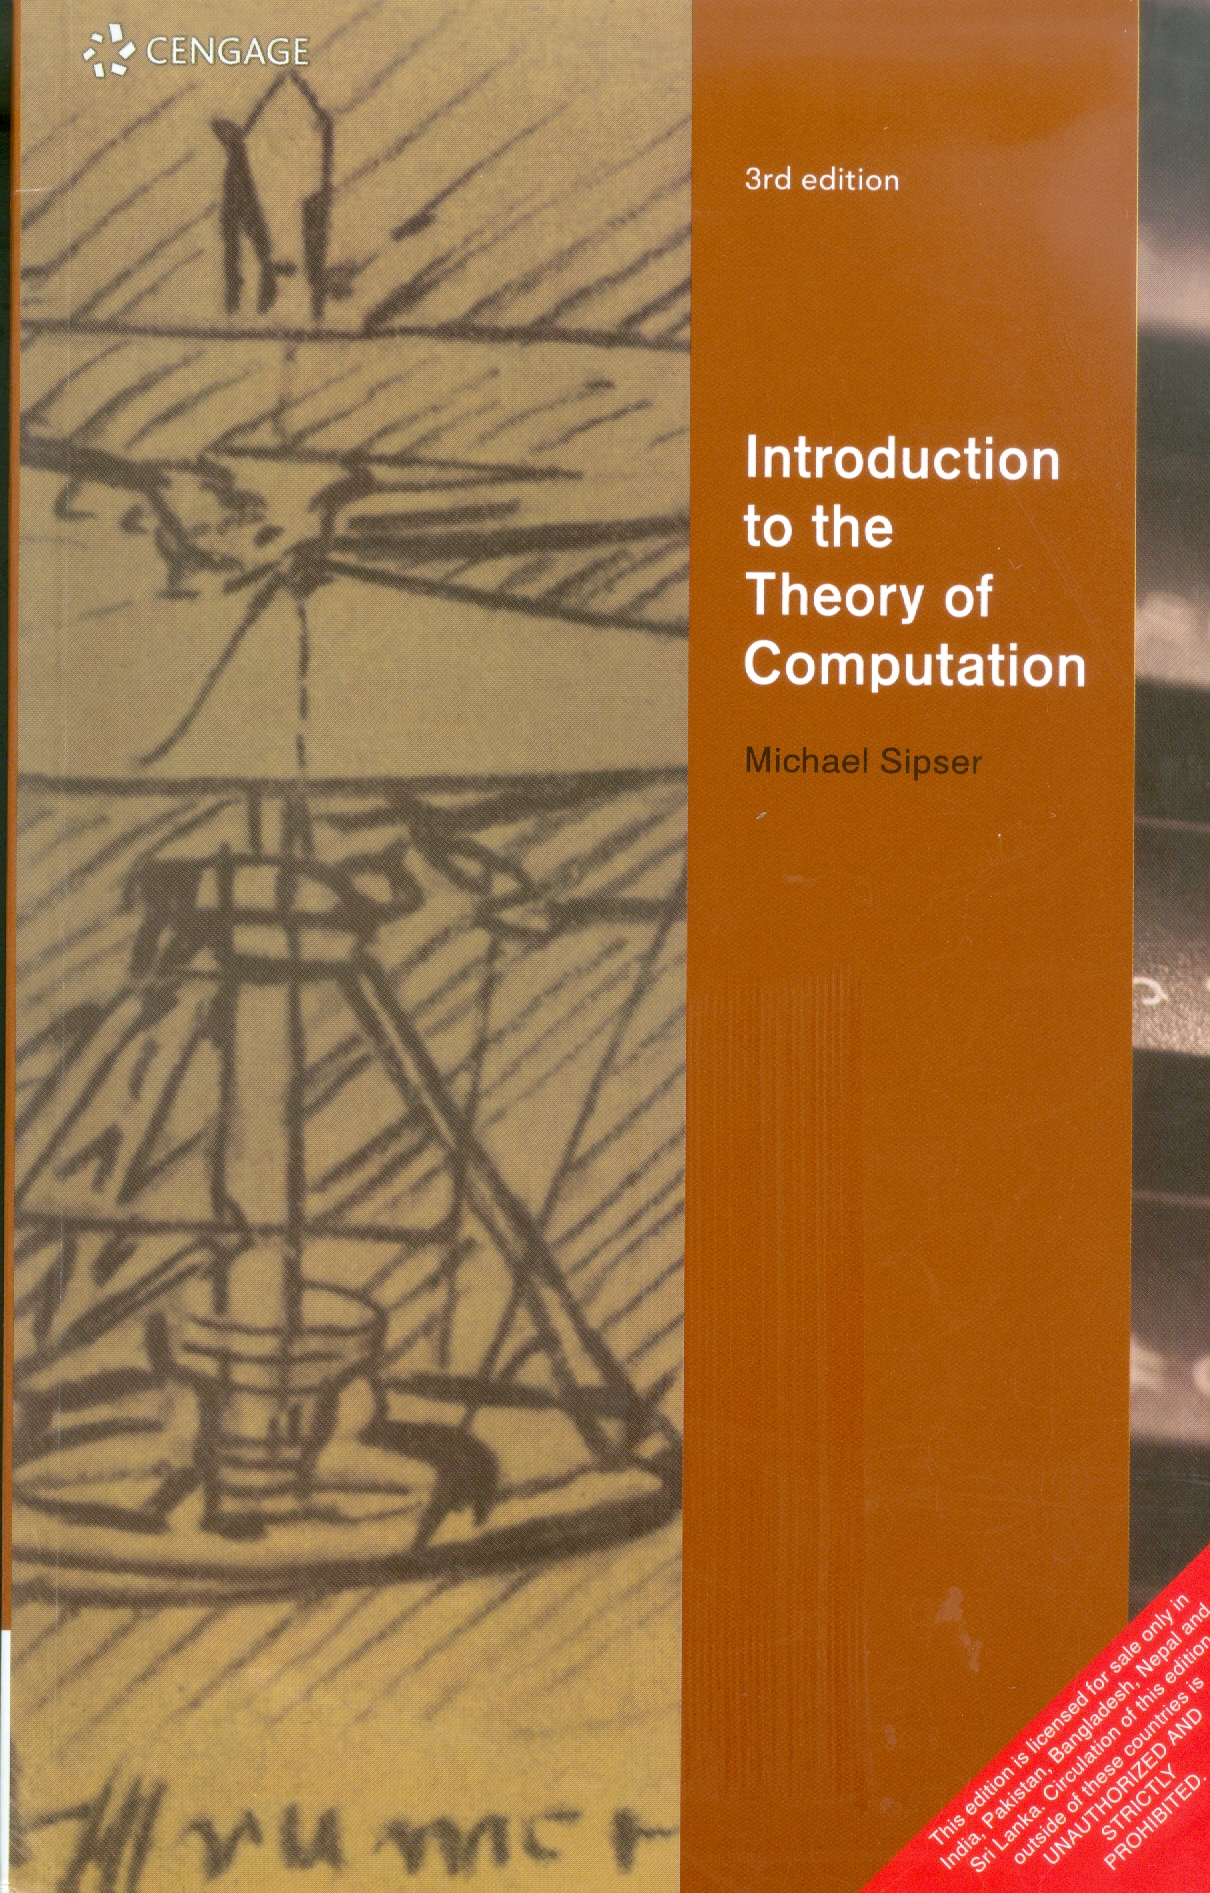 intro to the theory of computation0001.jpg